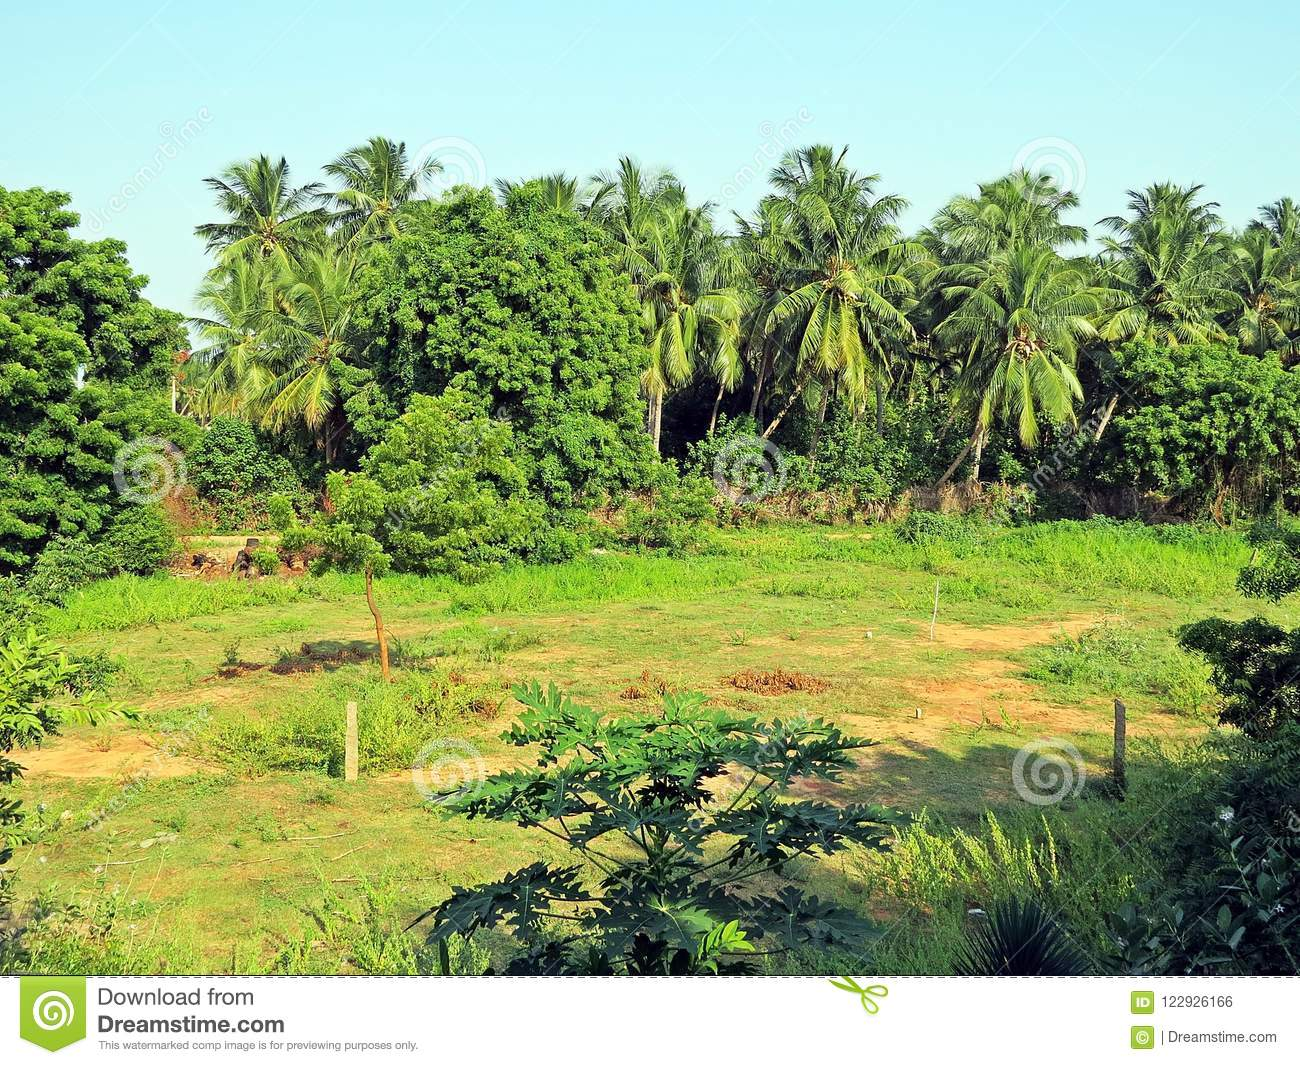 auroville-k-city-dawn-experimental-township-state-tamil-nadu-some-parts-union-territory-puducherry-south-122926166[1]